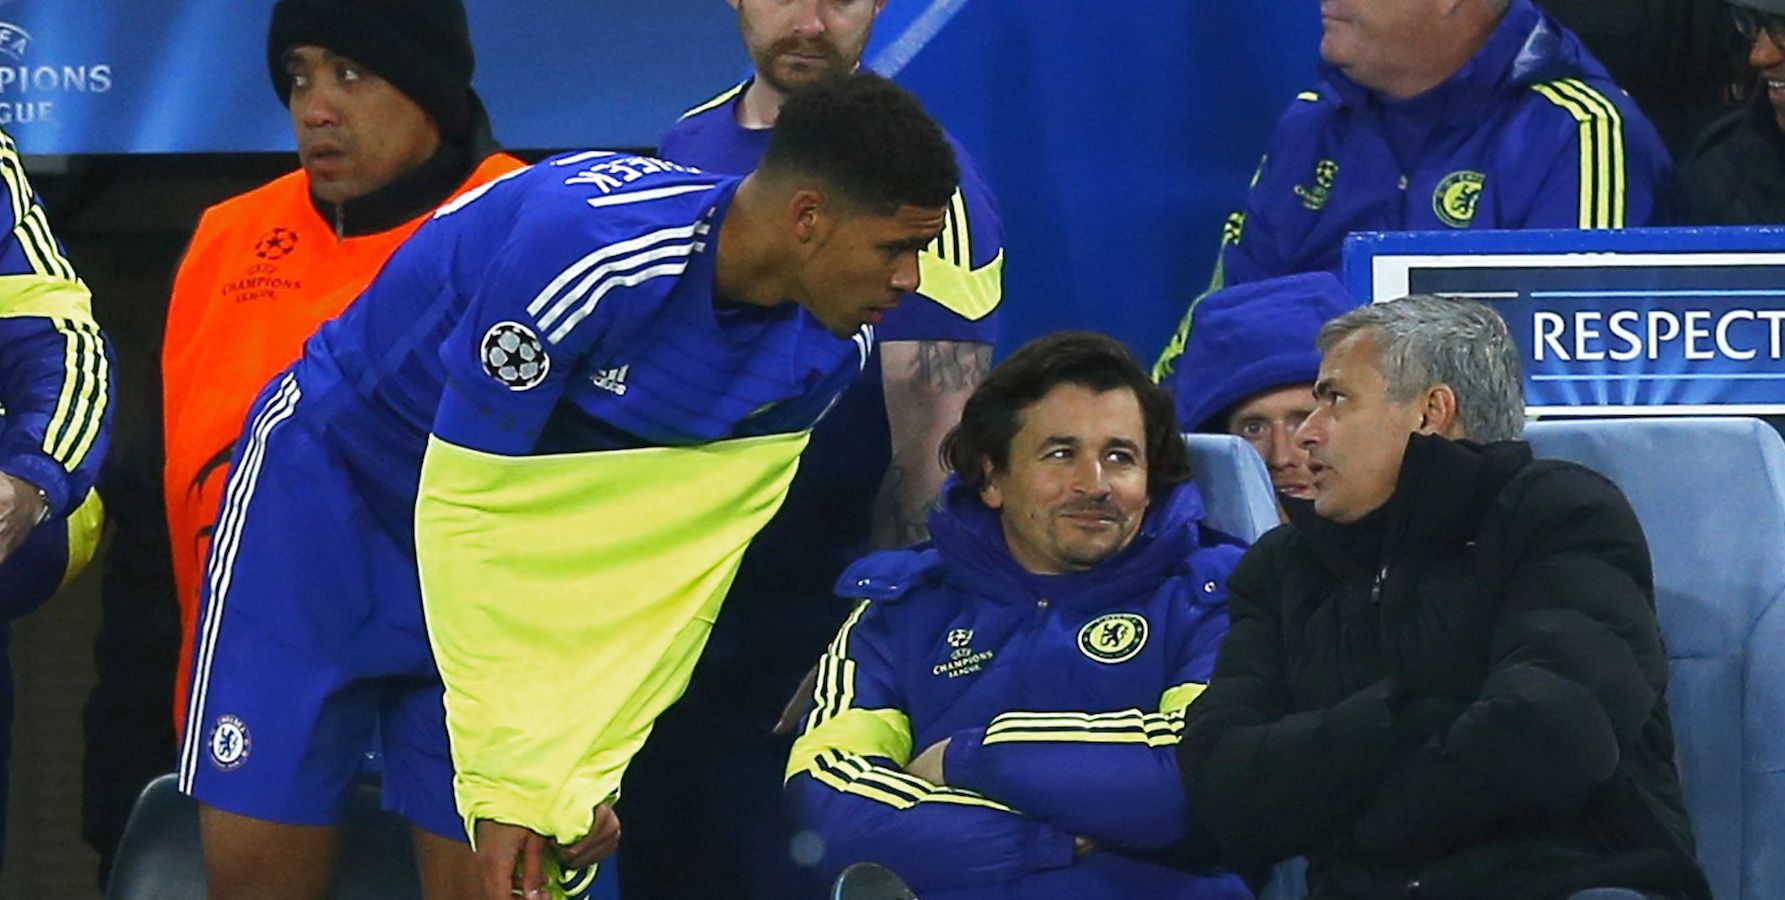 Chelsea's Ruben Loftus-Cheek (L) talks to manager Jose Mourinho (R) before coming on as a substitute in his first team debut during their Champions League soccer match against Sporting at Stamford Bridge in London December 10, 2014. REUTERS/Eddie Keogh      (BRITAIN - Tags: SPORT SOCCER) - RTR4HIVB